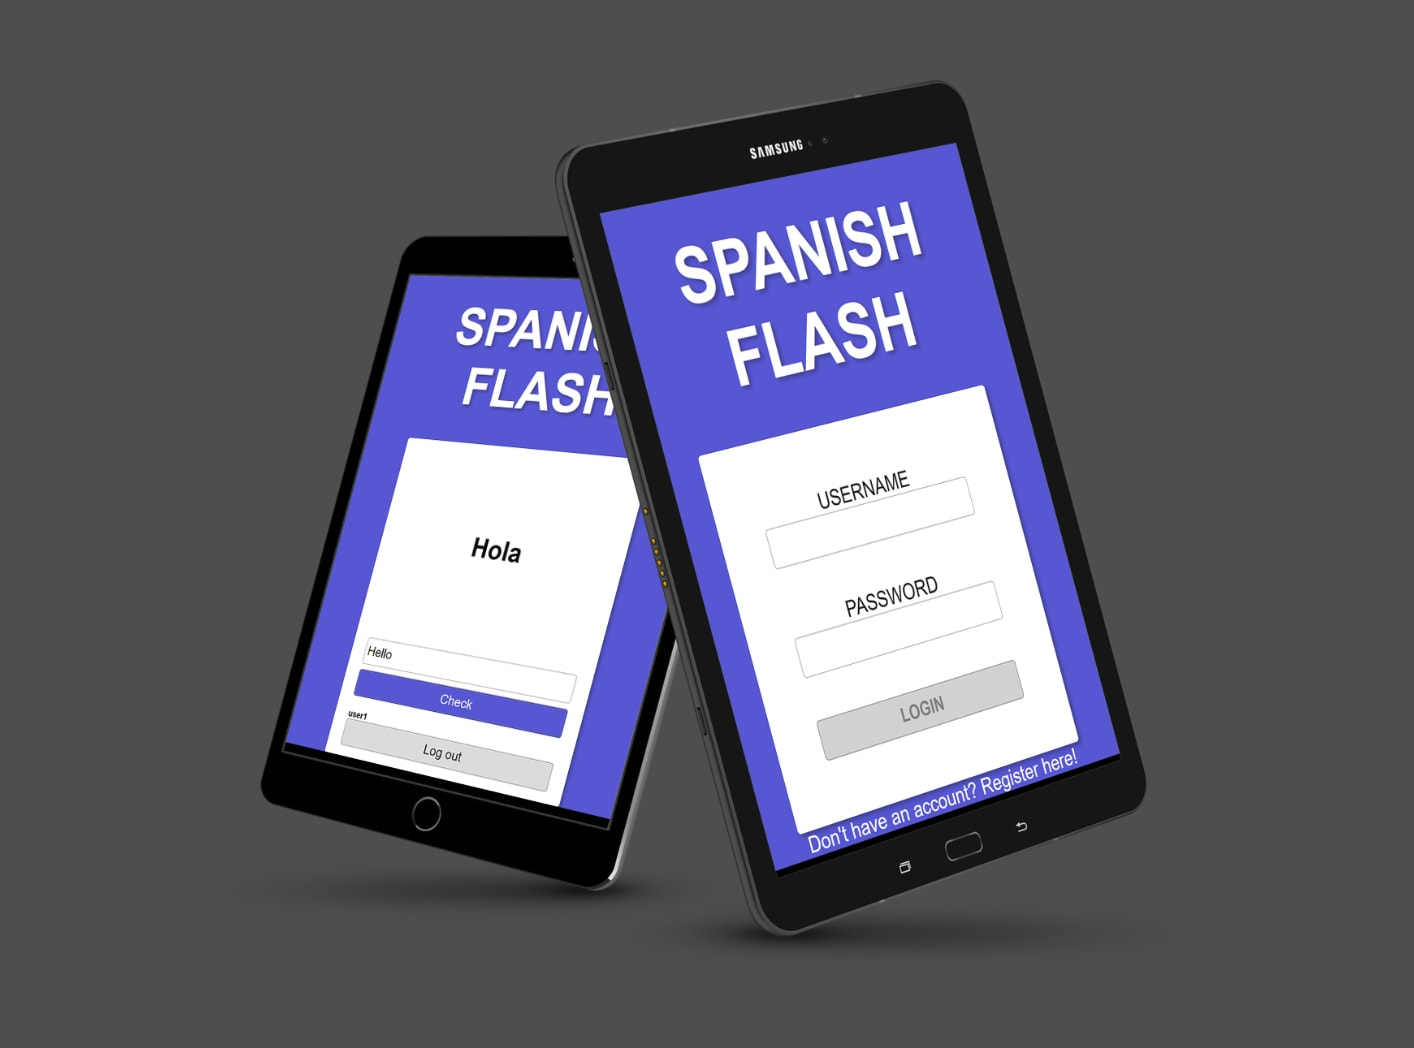 tablet images of Spanish Flash website